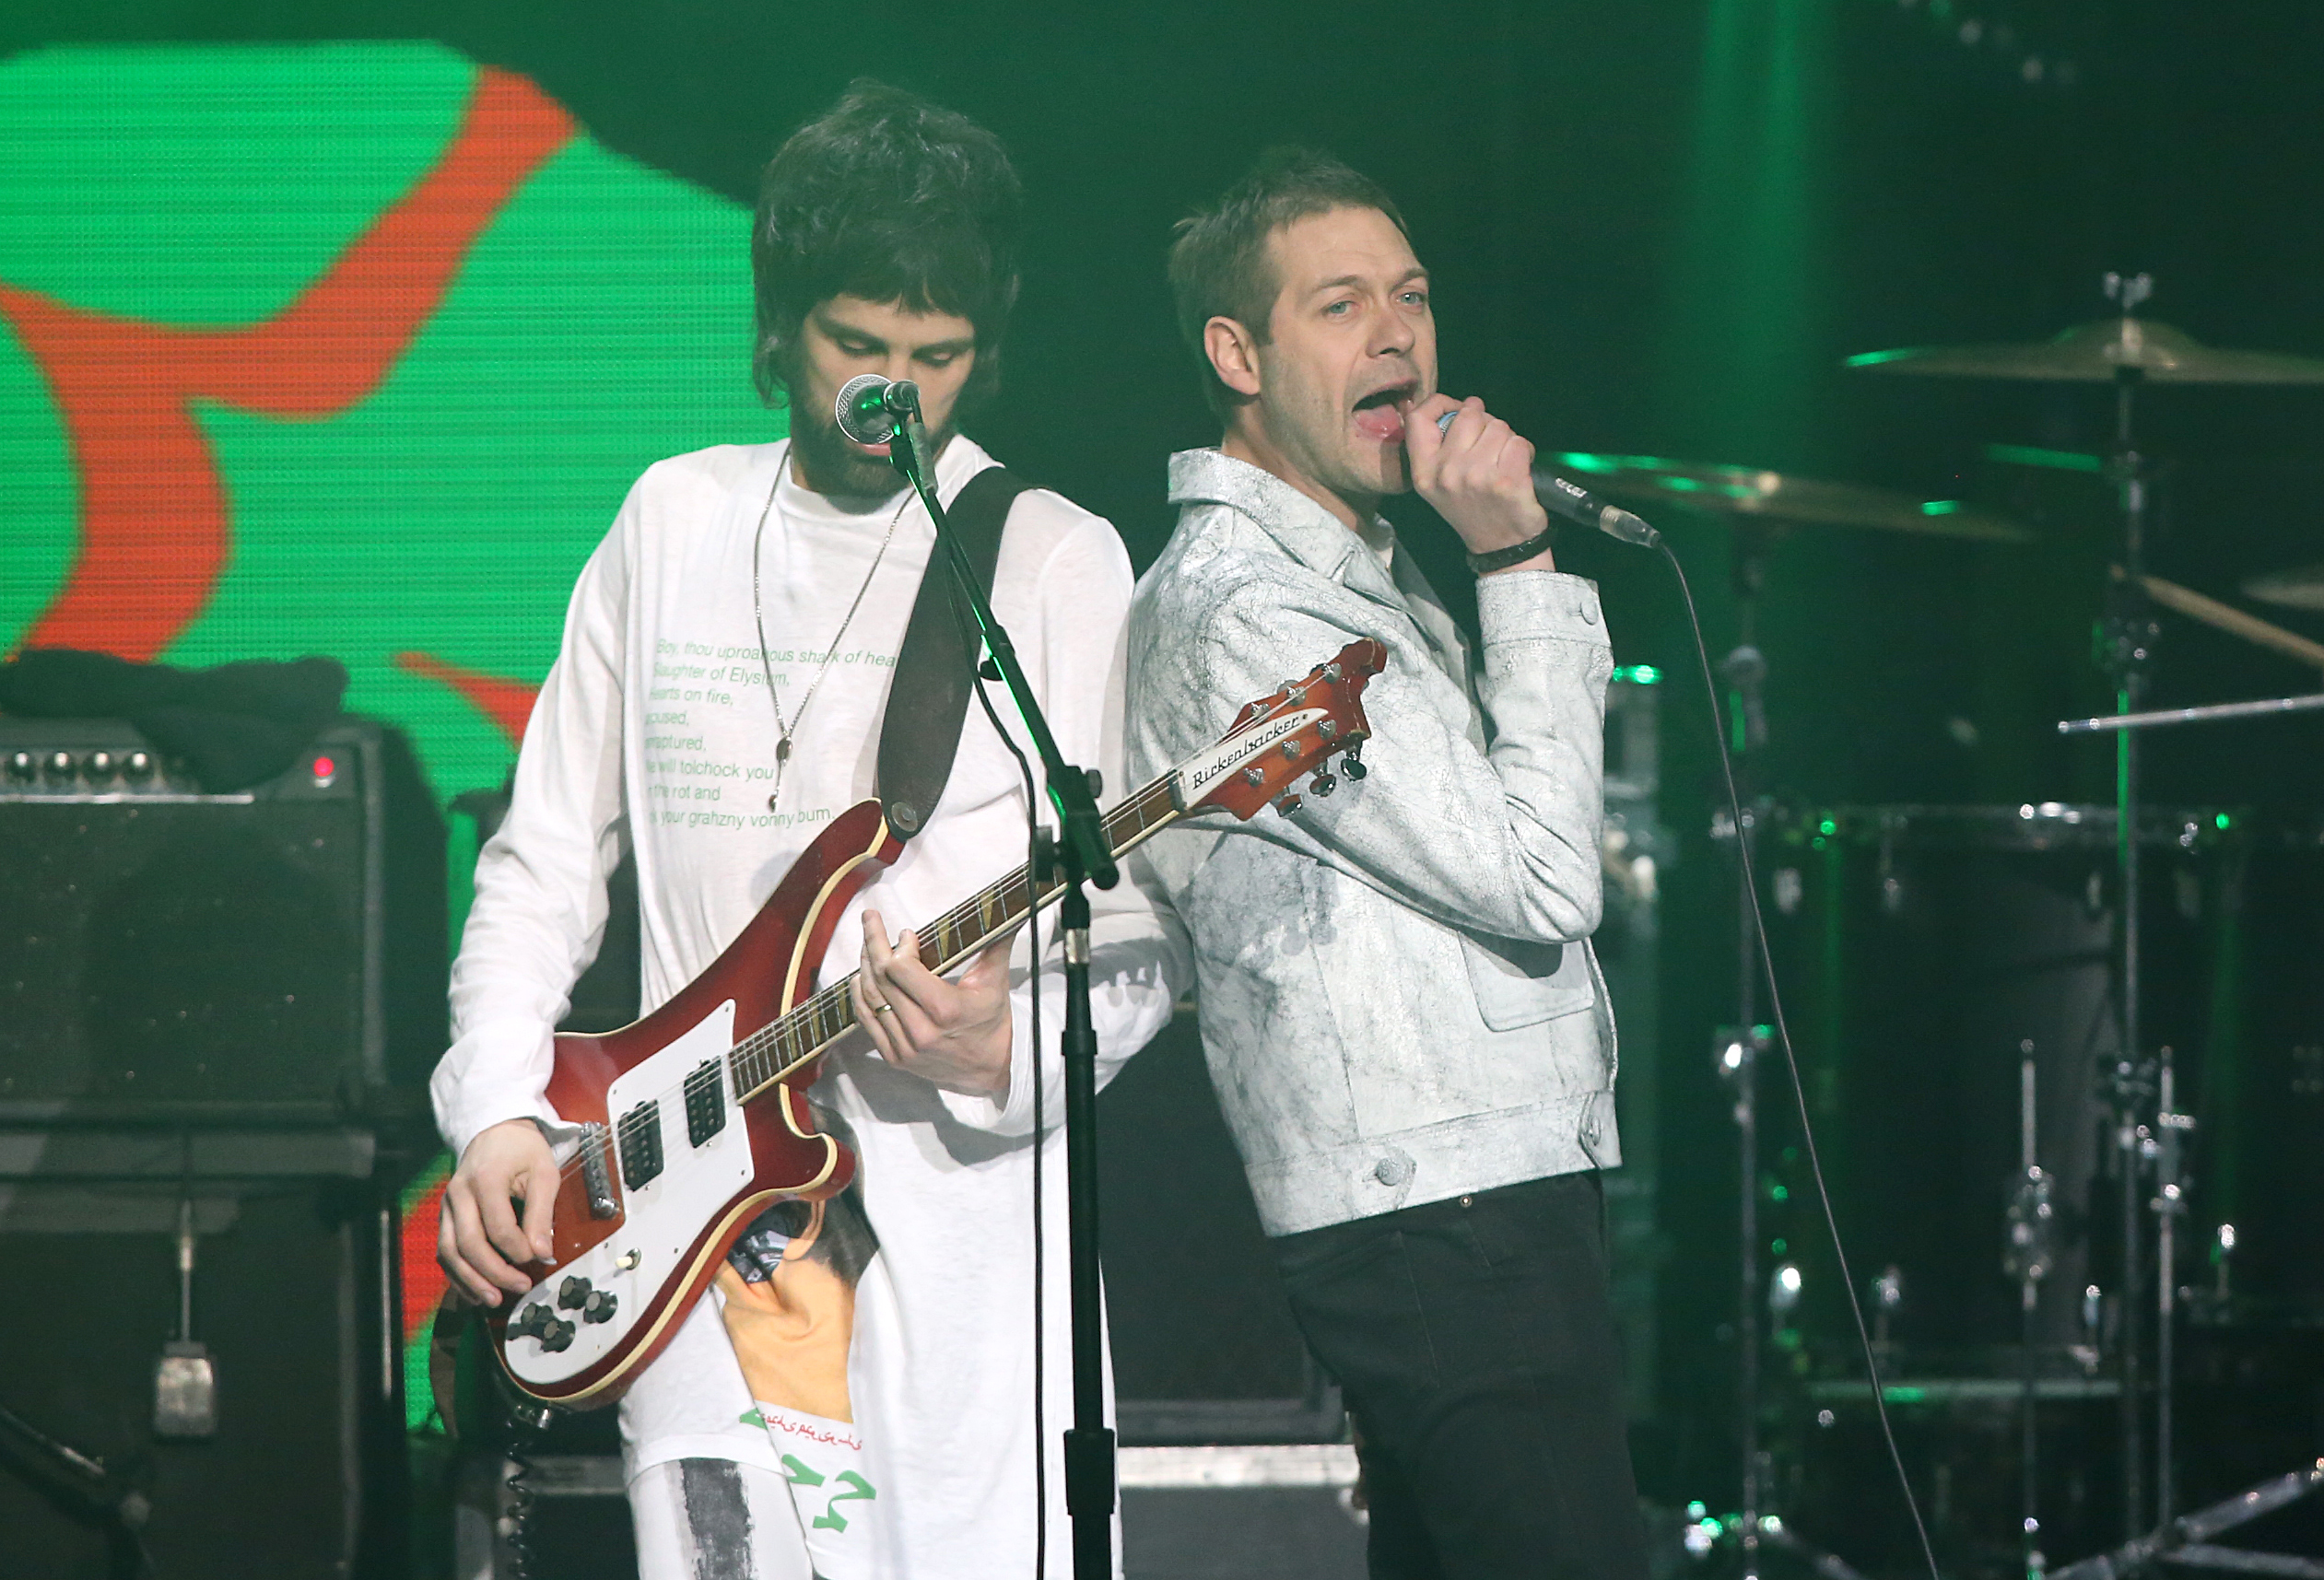 Kasabian live at the Global Awards